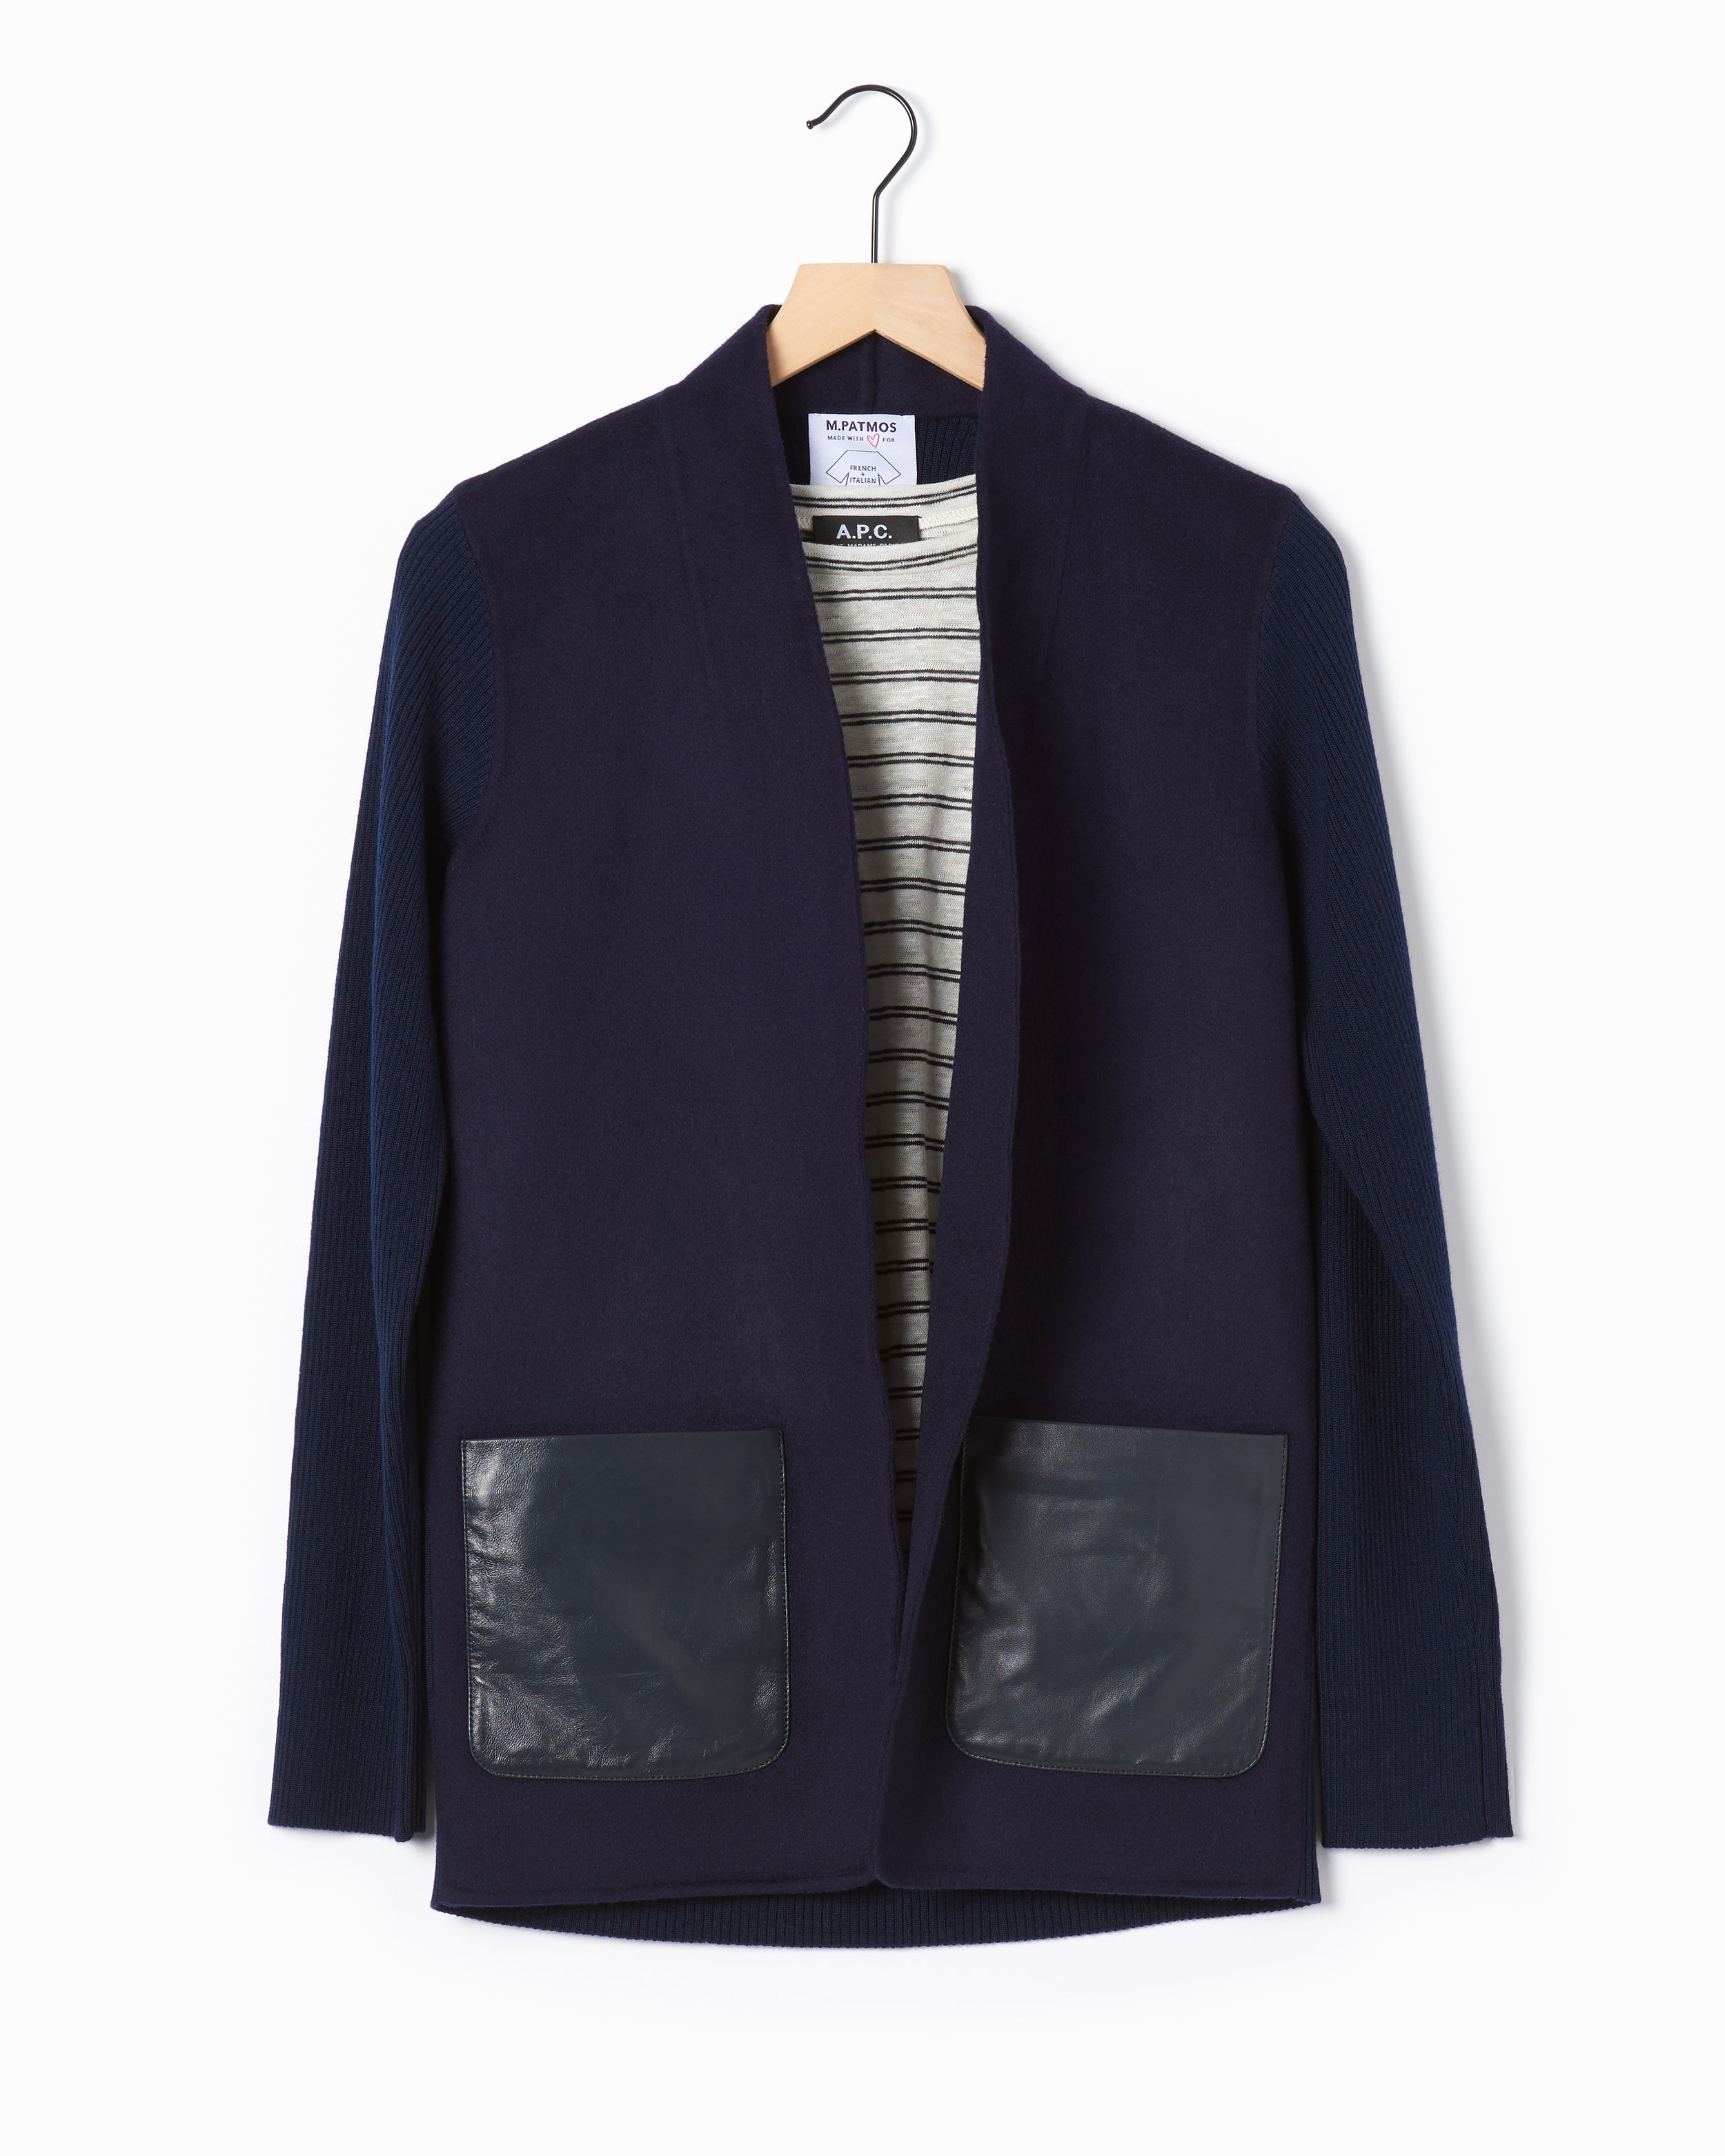 French_Italian_M_Patmos_Passport_Blazer_Navy_03.jpg